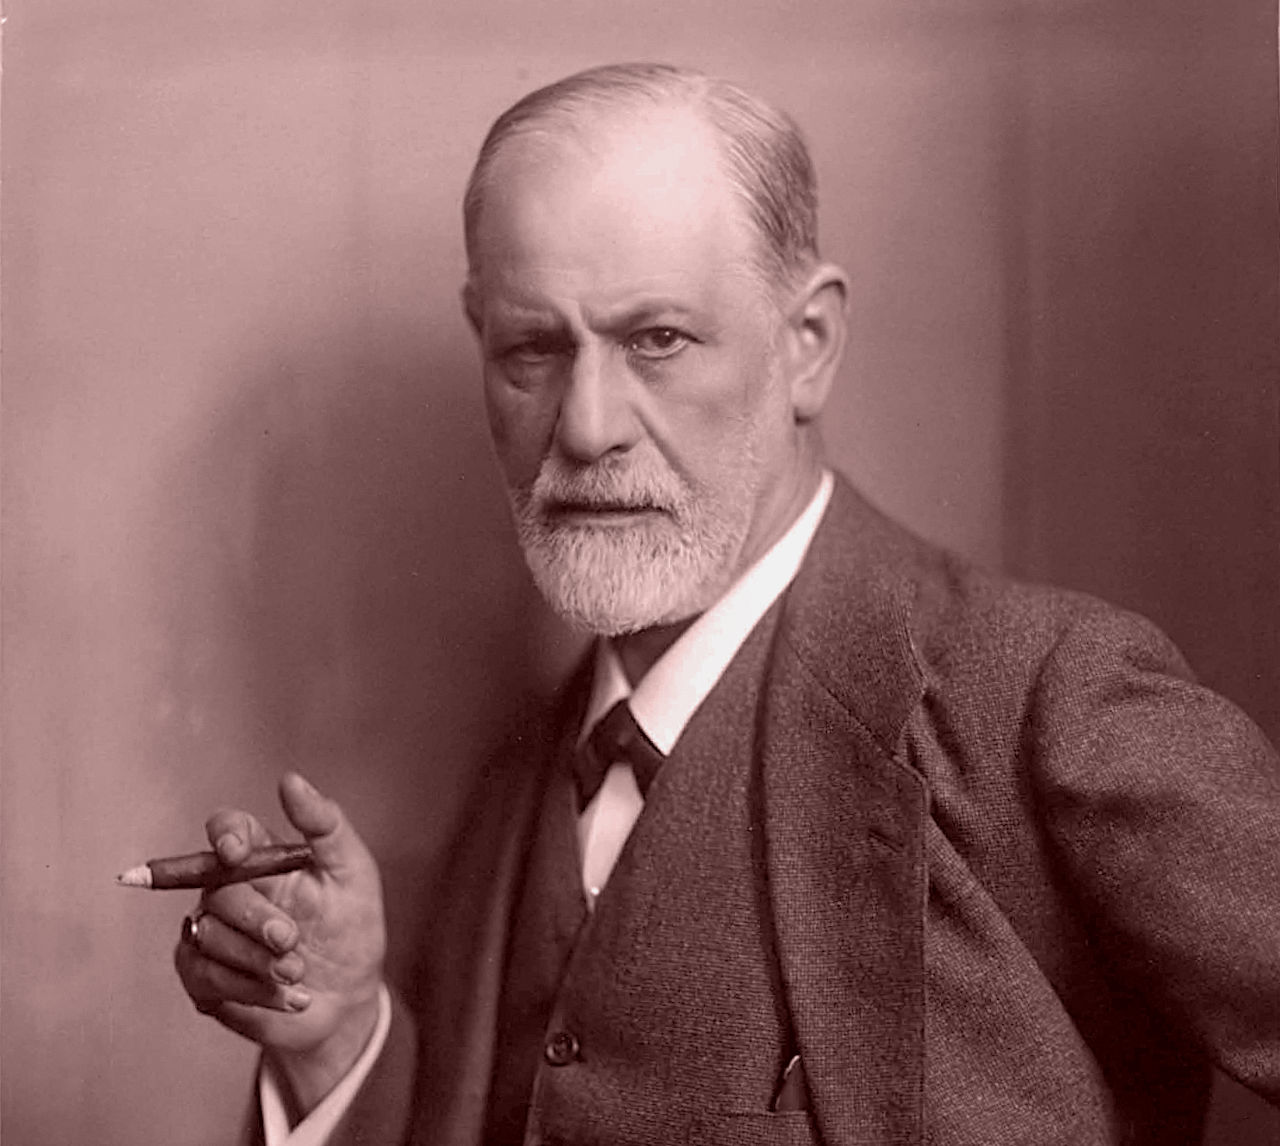 Photographic portrait of Sigmund Freud